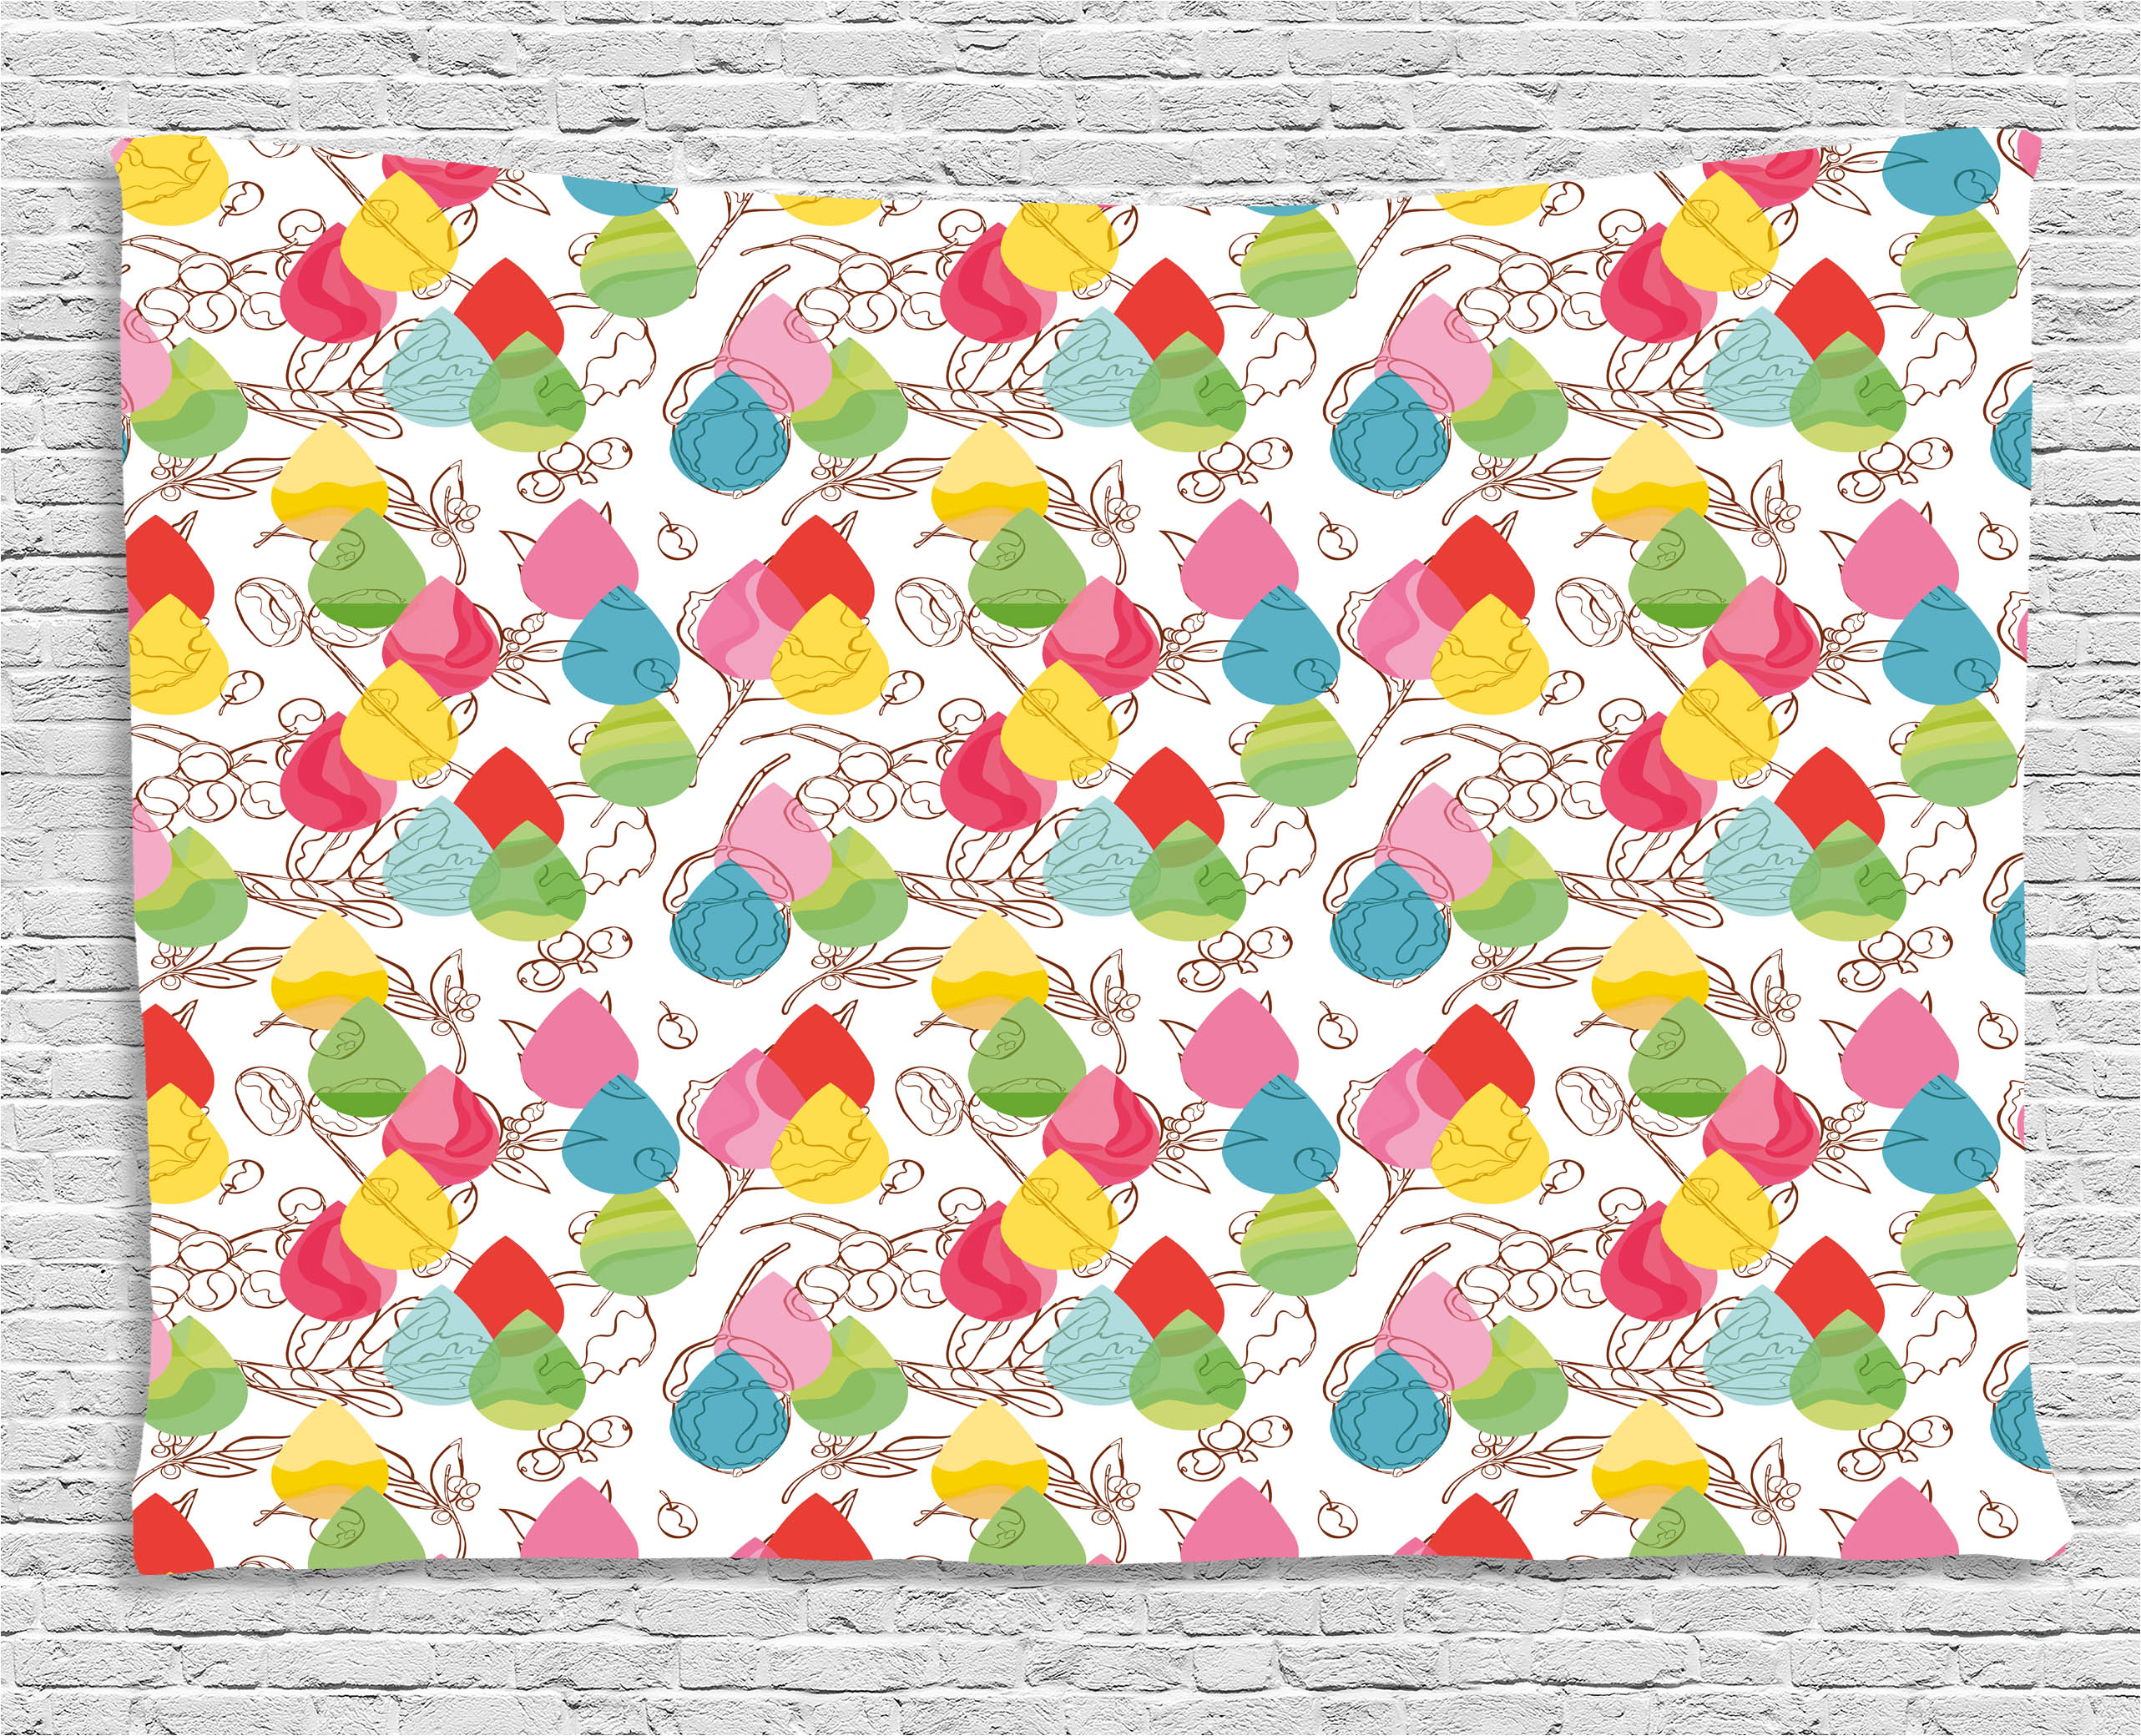 Modern Decor Tapestry, Rainbow Colored Ombre Abstract Raindrop Backdrop  With Leaves And Flowers Image,